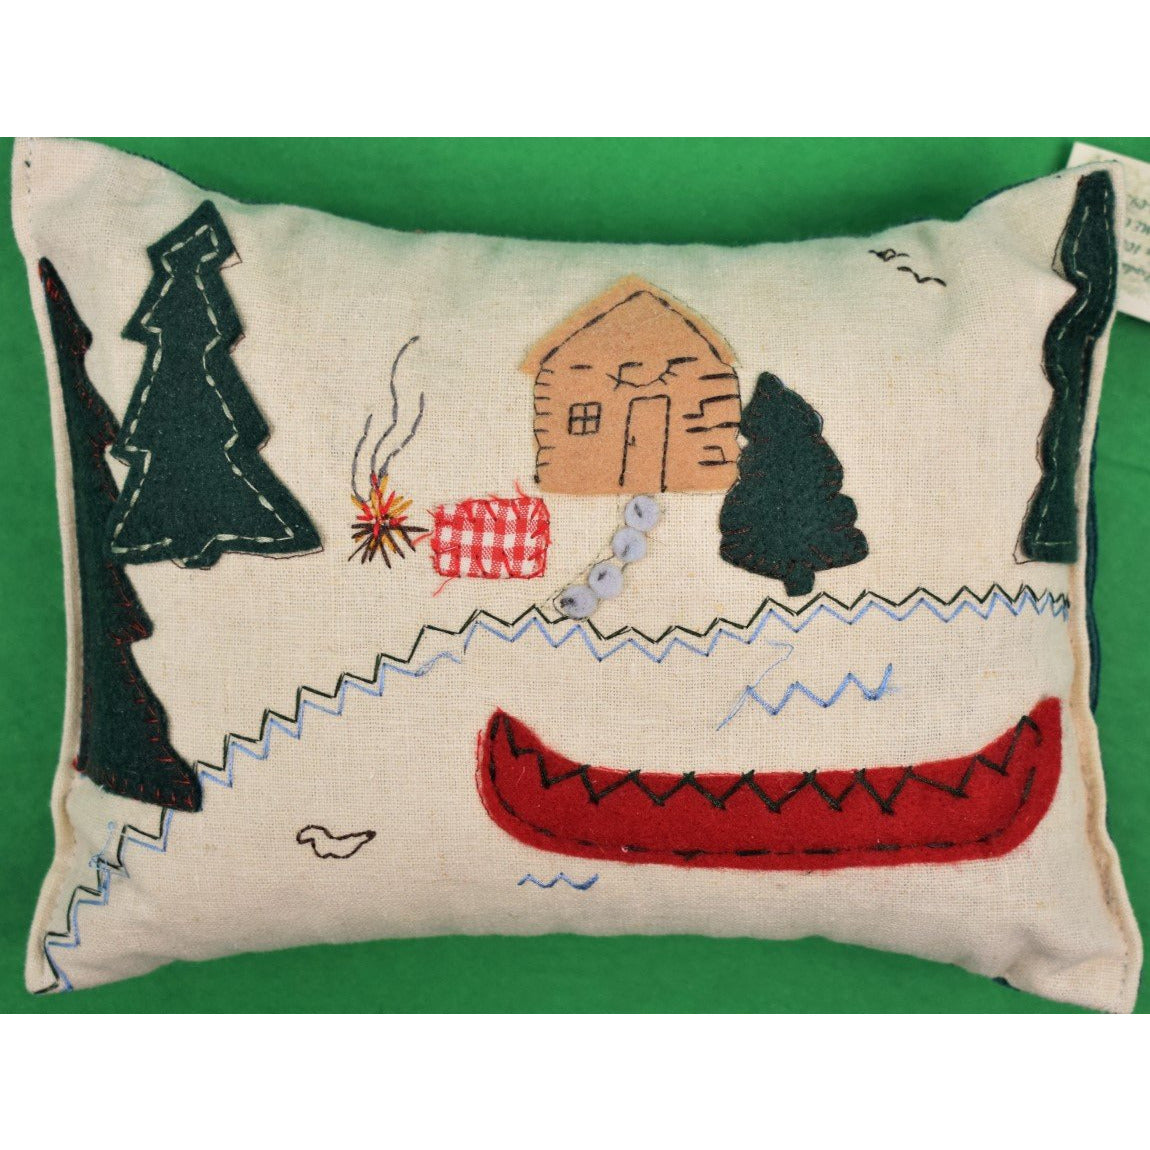 Balsam-Filled Patchwork Camp Pillow